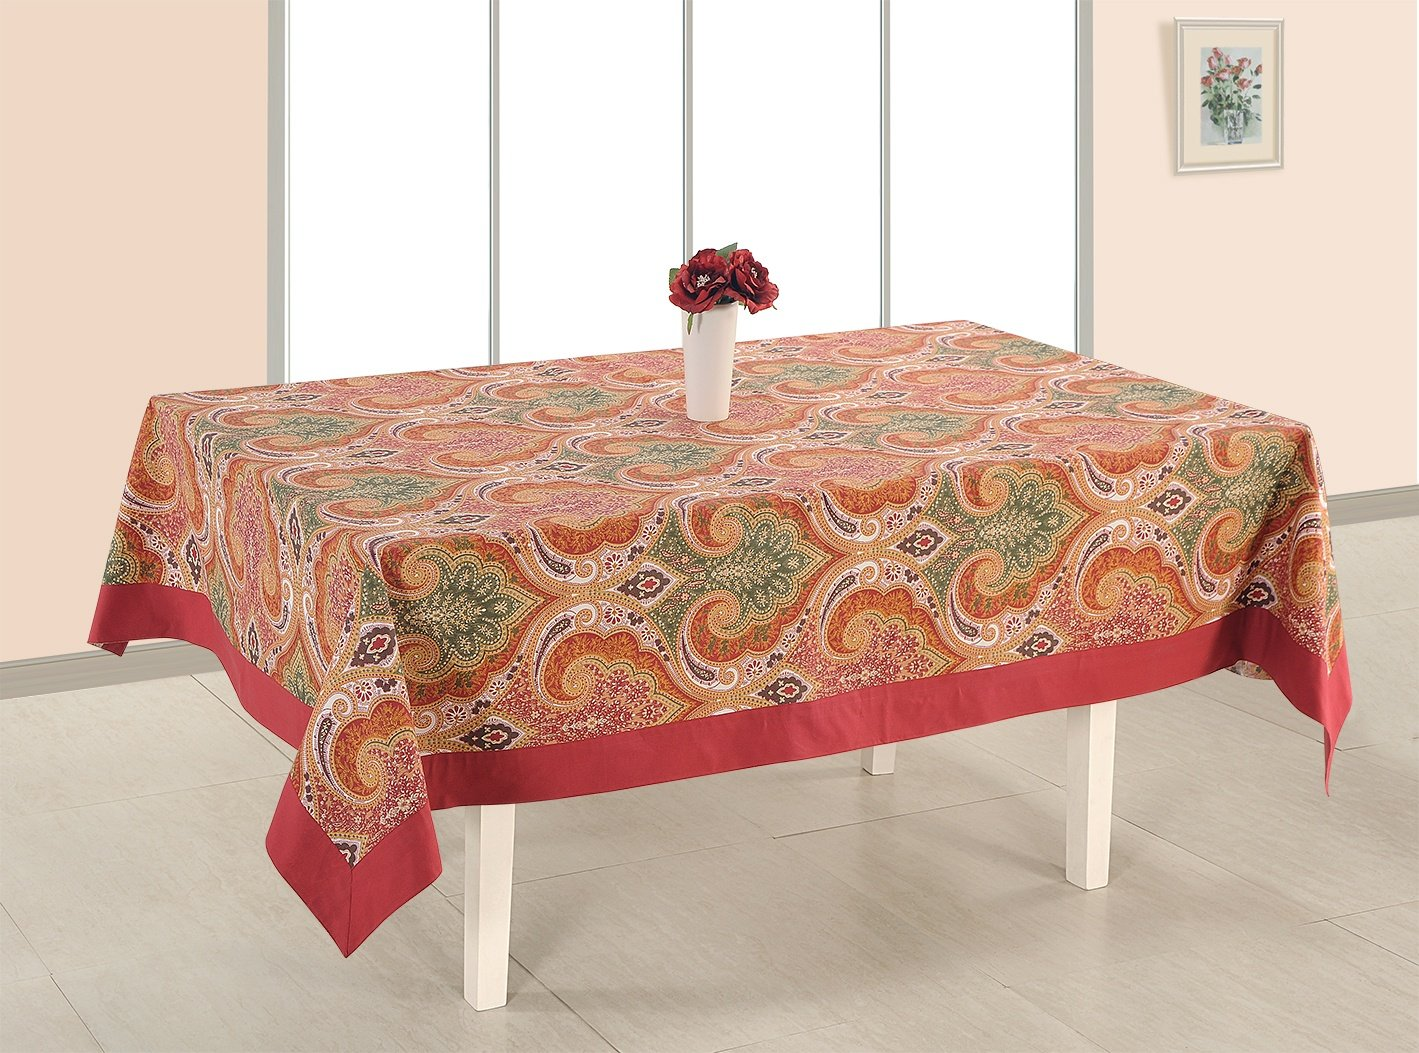 ShalinIndia Cotton Printed Table Cloth Cover Rectangle Table Cover -144x60-Inch,Light Maron Border